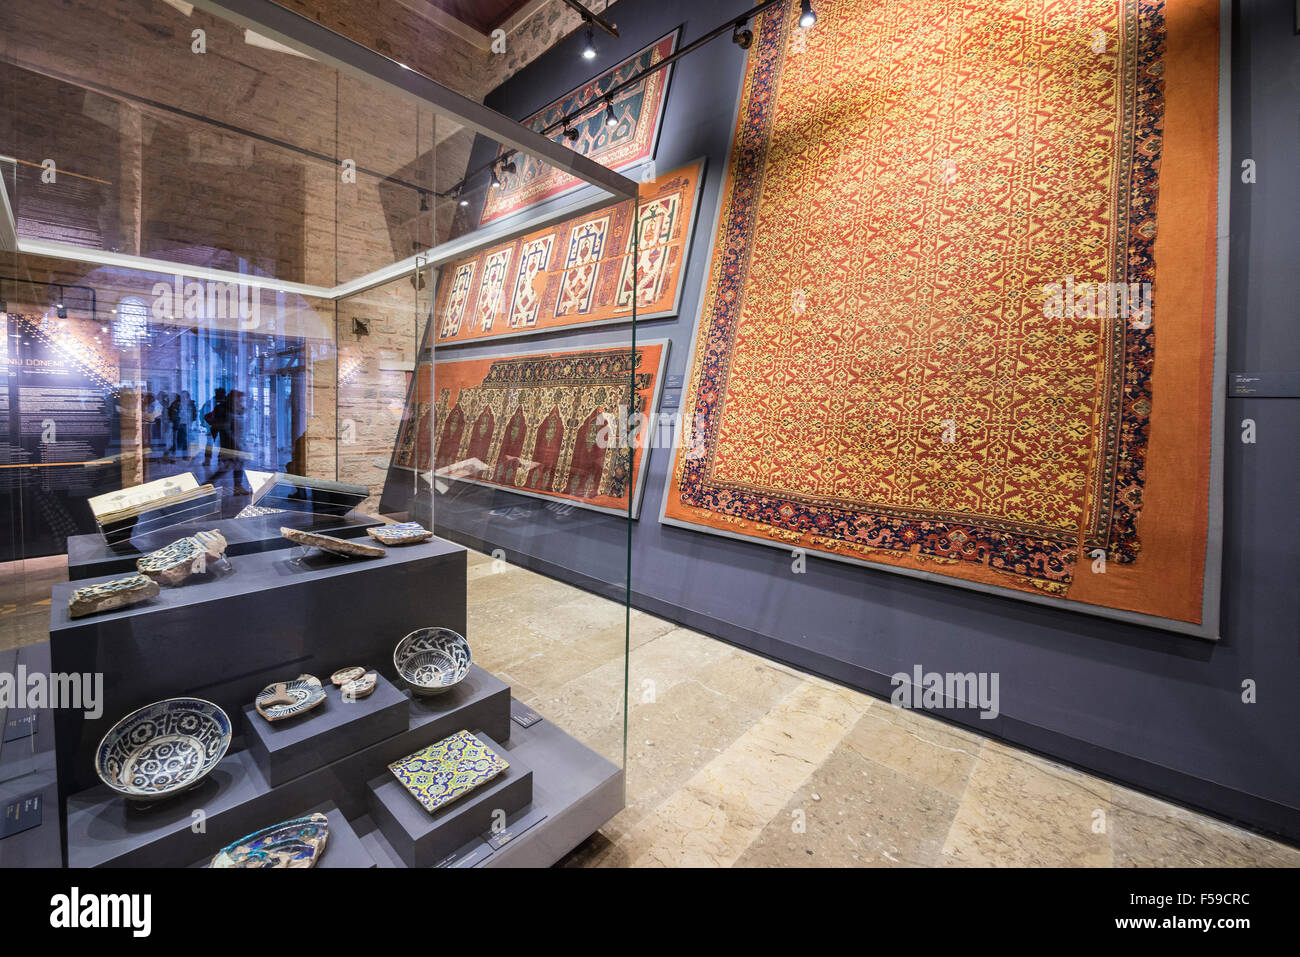 Rugs and ceramics in the Museum of Turkish and Islamic Arts, Hippodrome, Sultanahmet, Istanbul, Turkey. - Stock Image